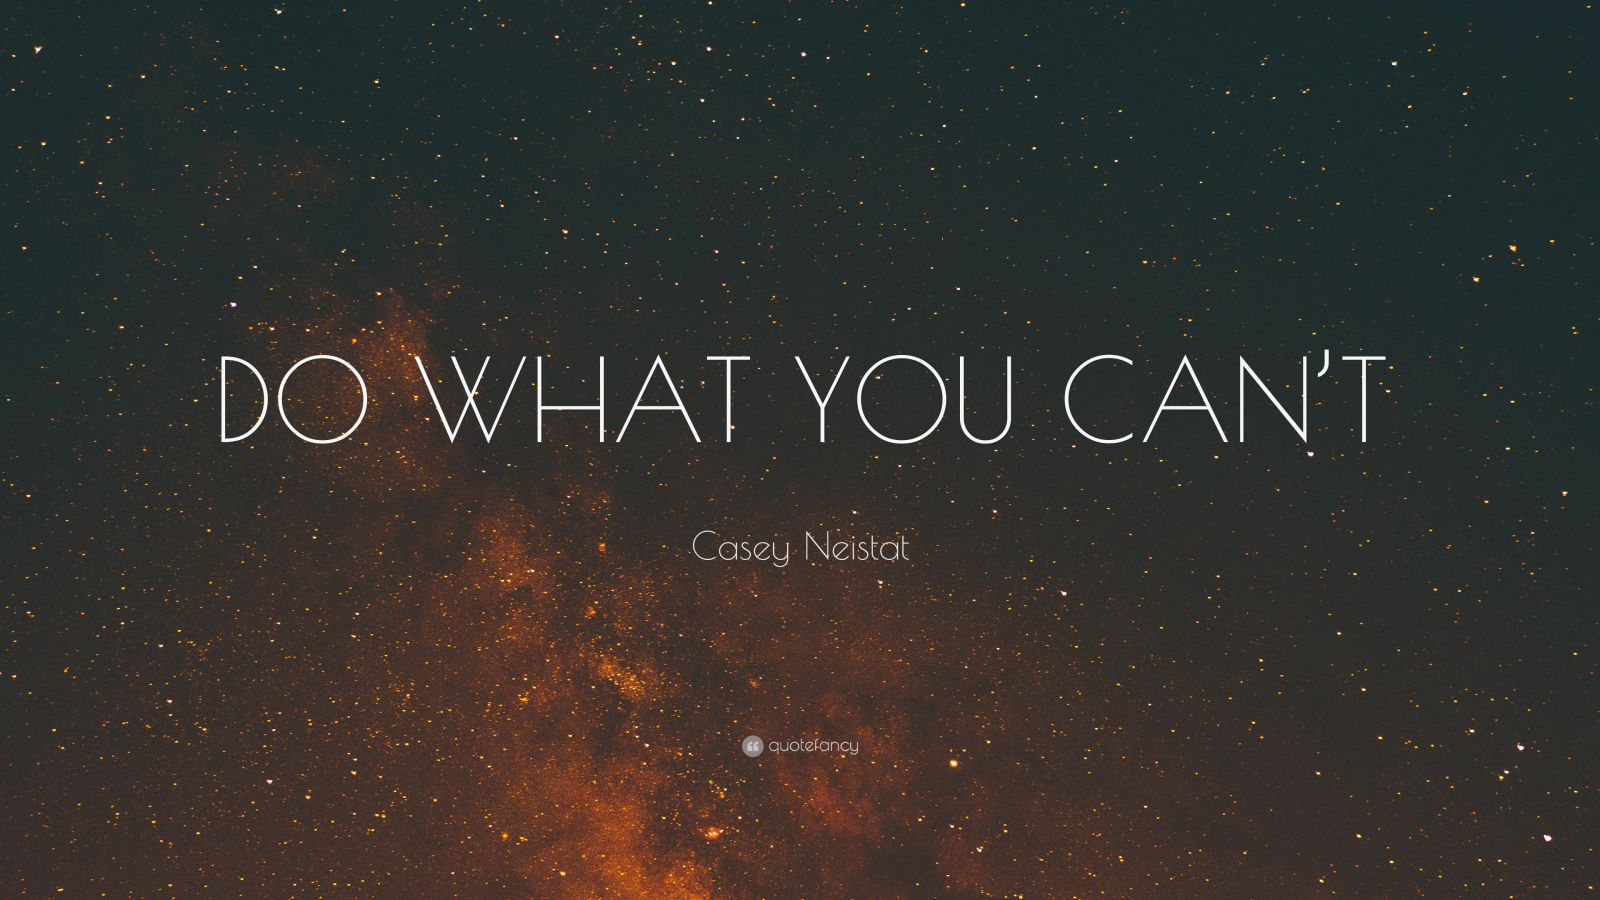 """Casey Neistat Quote: """"DO WHAT YOU CAN'T"""""""